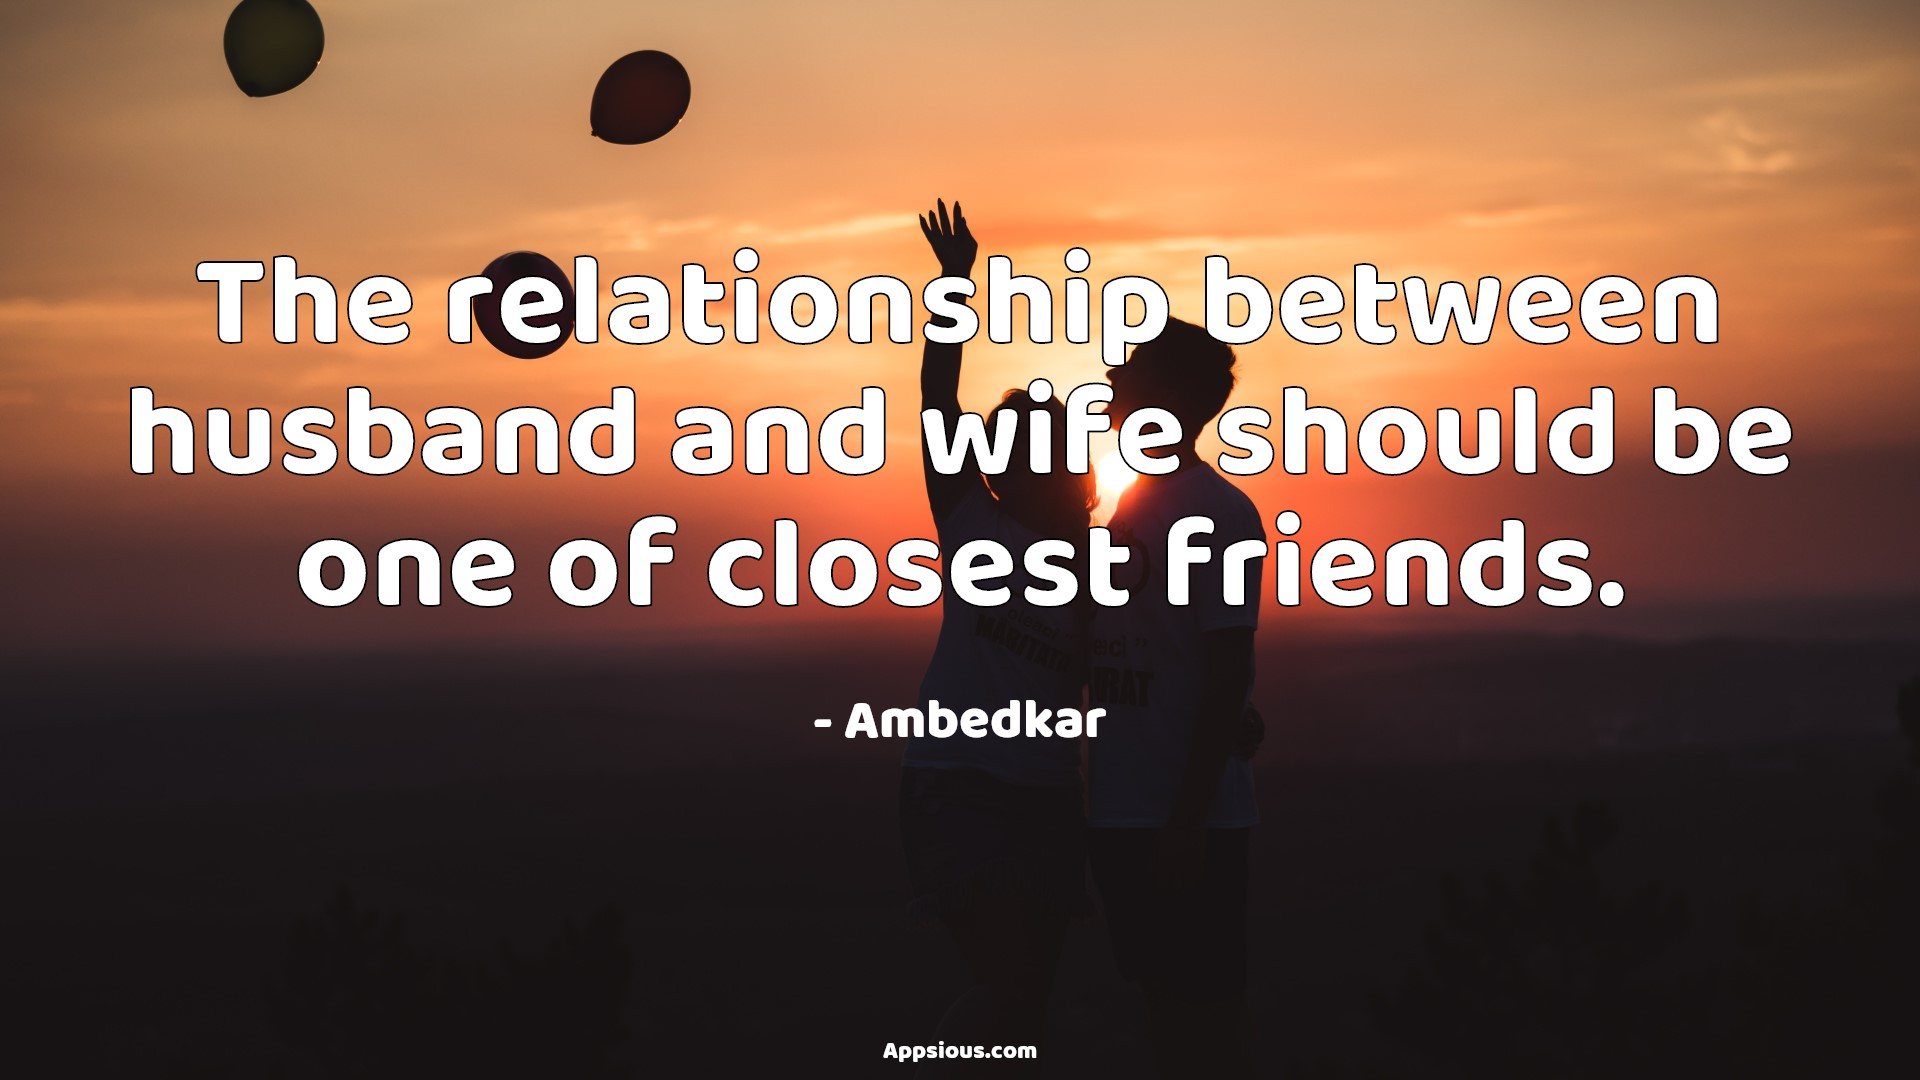 The relationship between husband and wife should be one of closest friends.